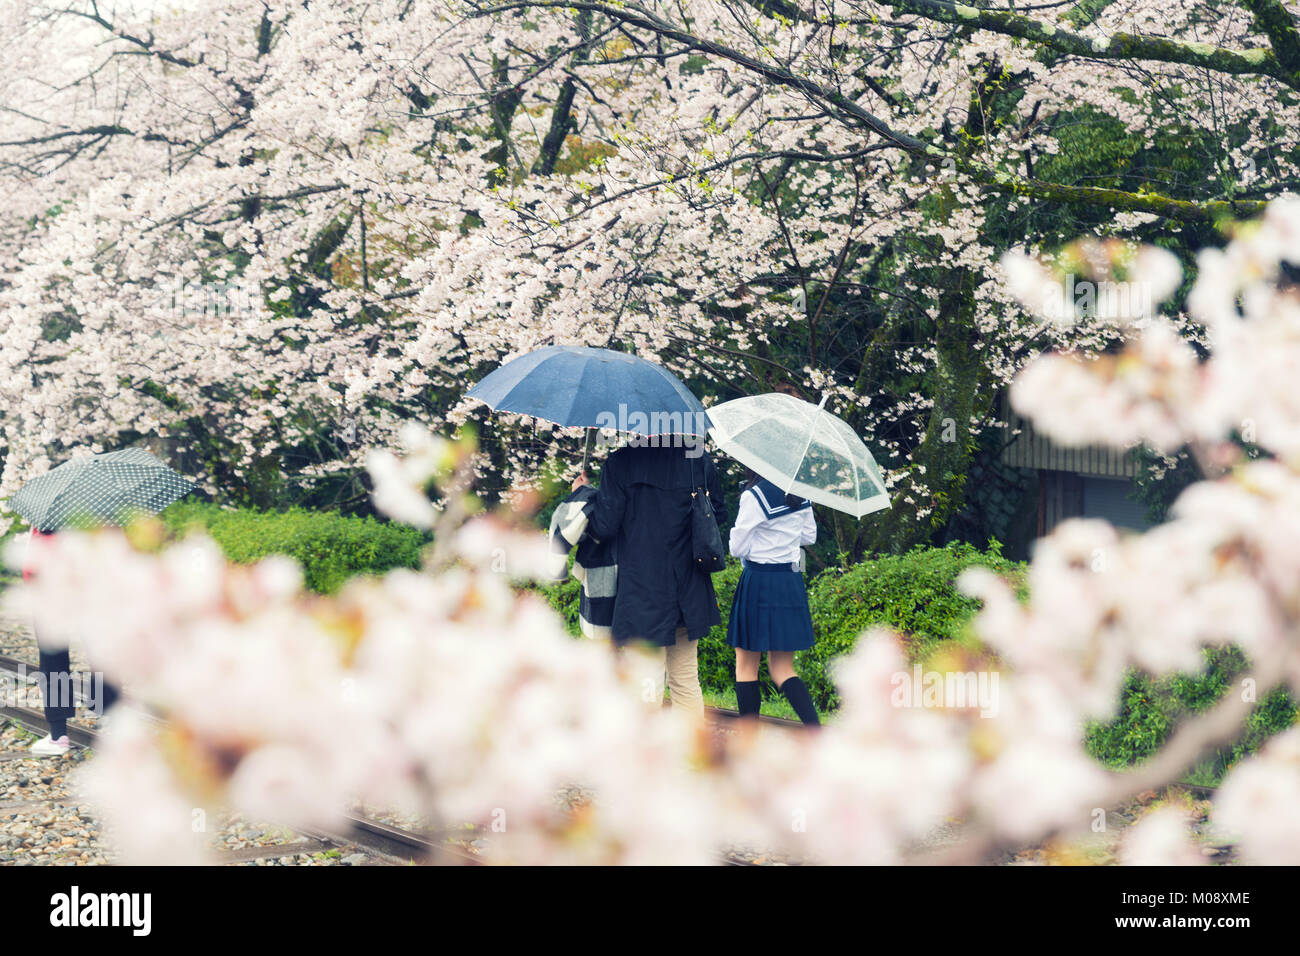 Cherry blossom flowers in garden with many people at Kyoto, Japan. Stock Photo